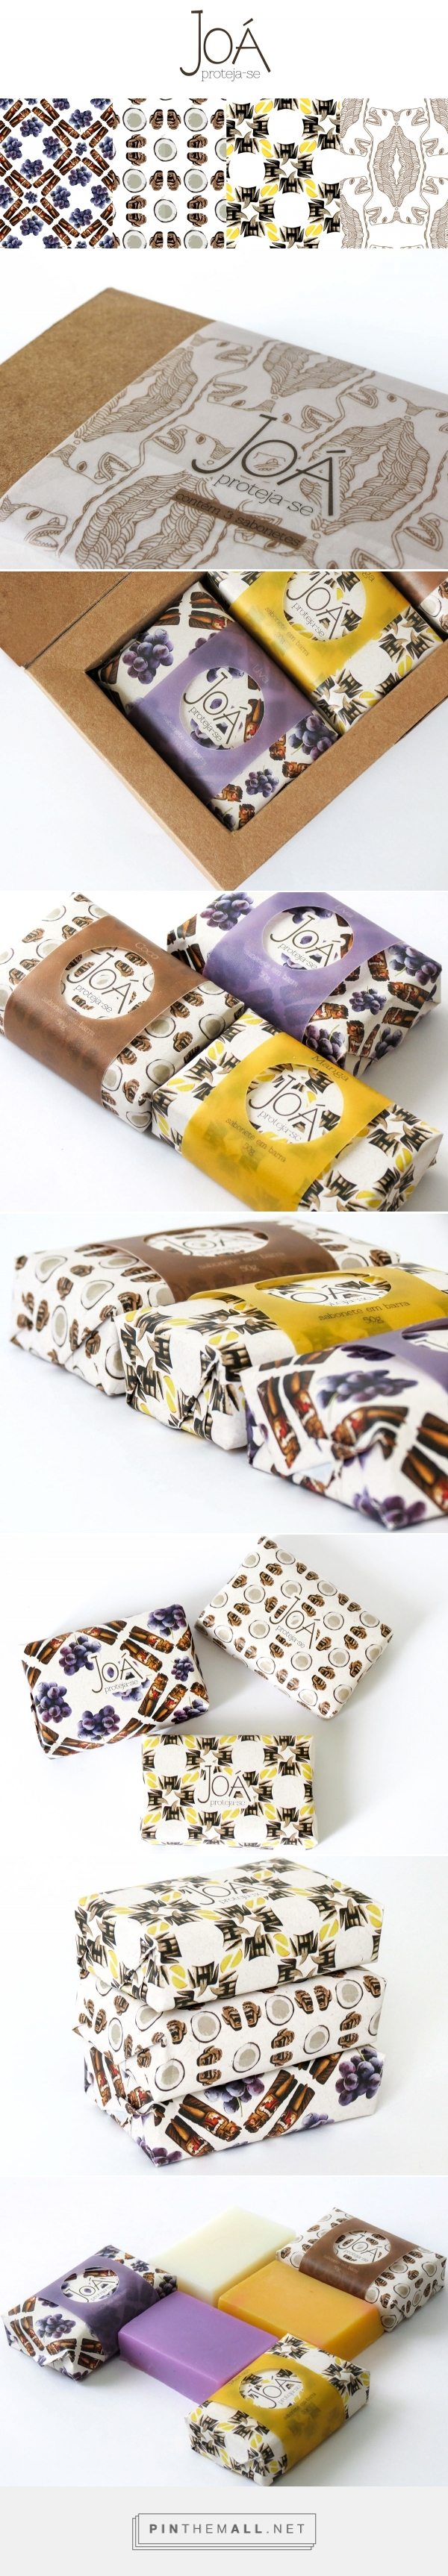 Graphic Design, Packaging, Pattern Design for Superfícies de um lugar on Behance by Jéssica Magalhães Belo Horizonte, Brazil curated by Packaging Diva PD. Gorgeous patterned soap packaging.